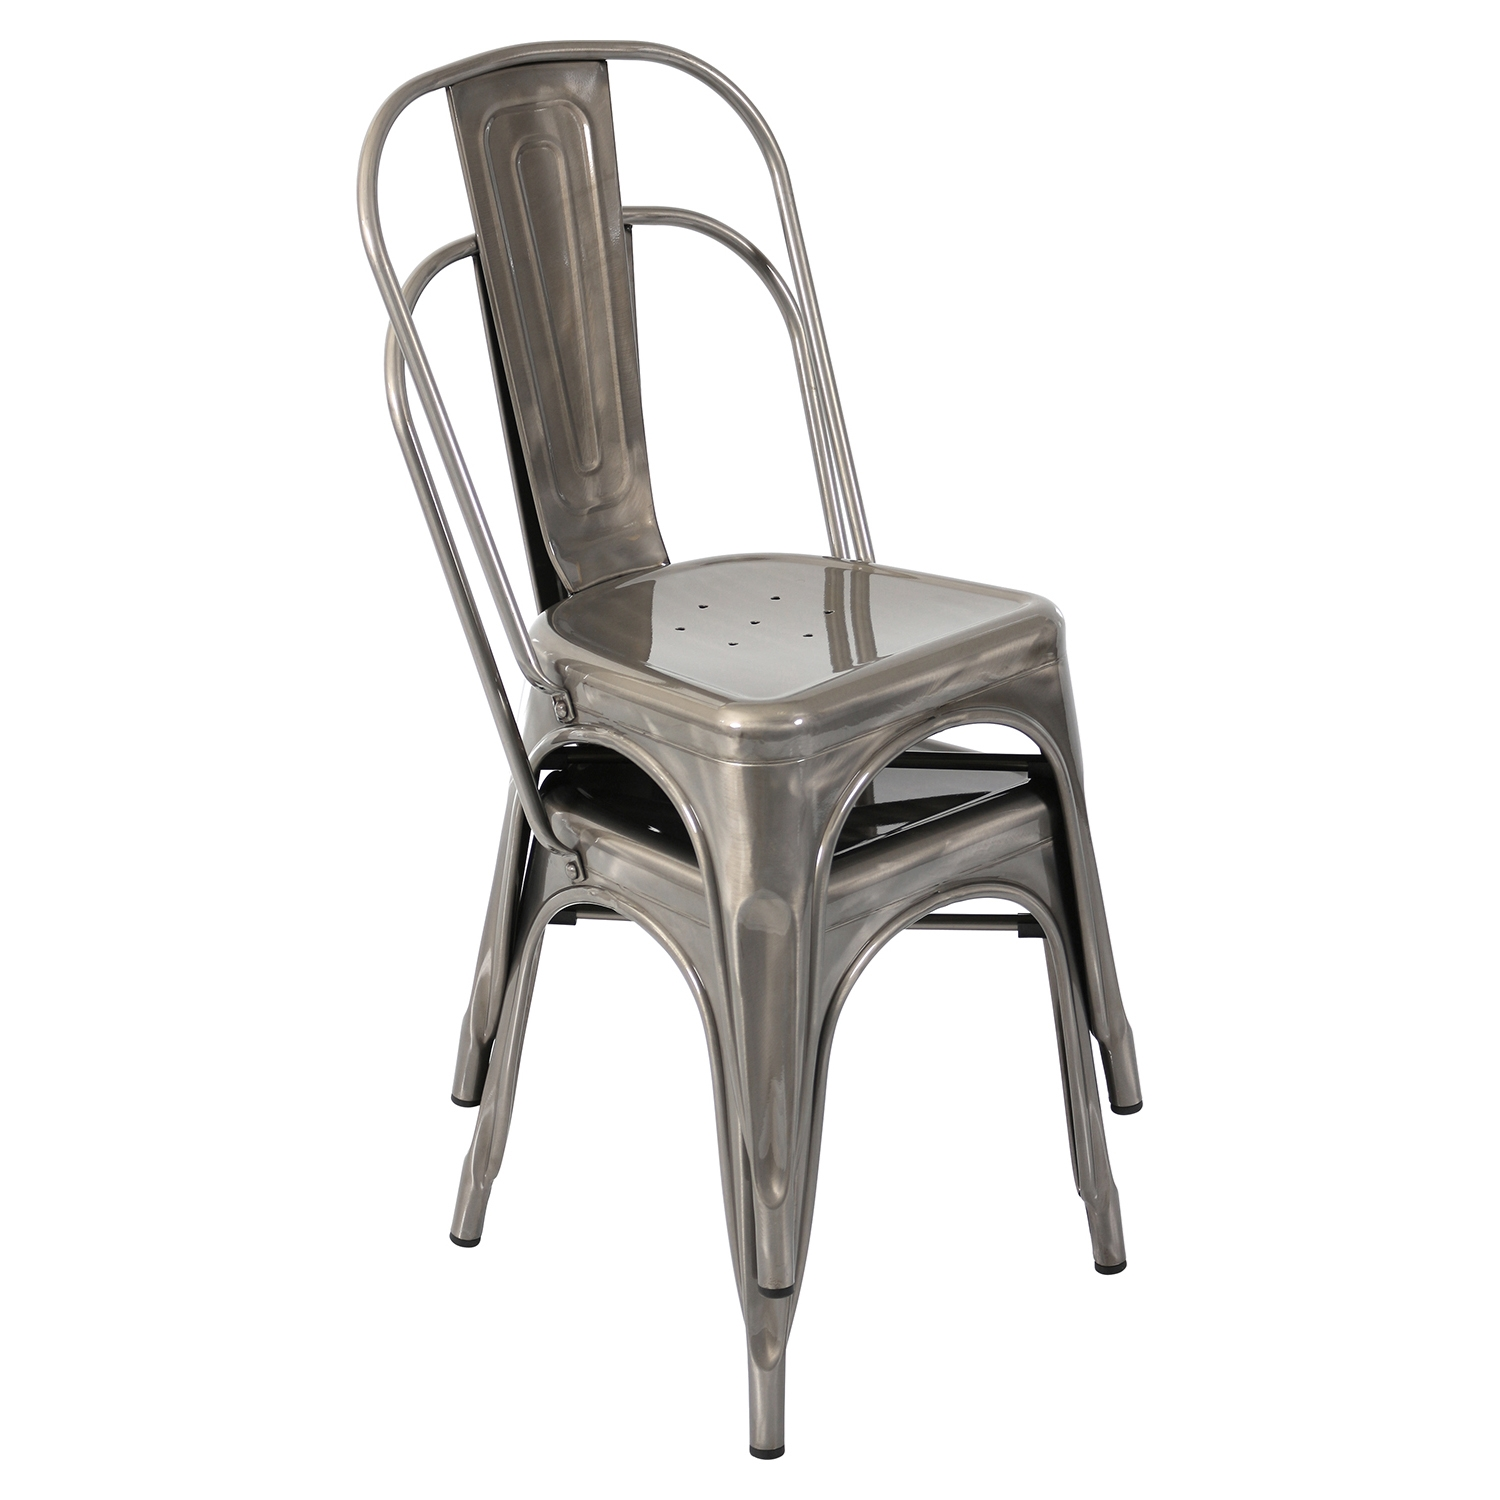 Oregon Stackable Dining Chair - Brushed Silver (Set of 2) - LMS-DC-TW-OR-SV2